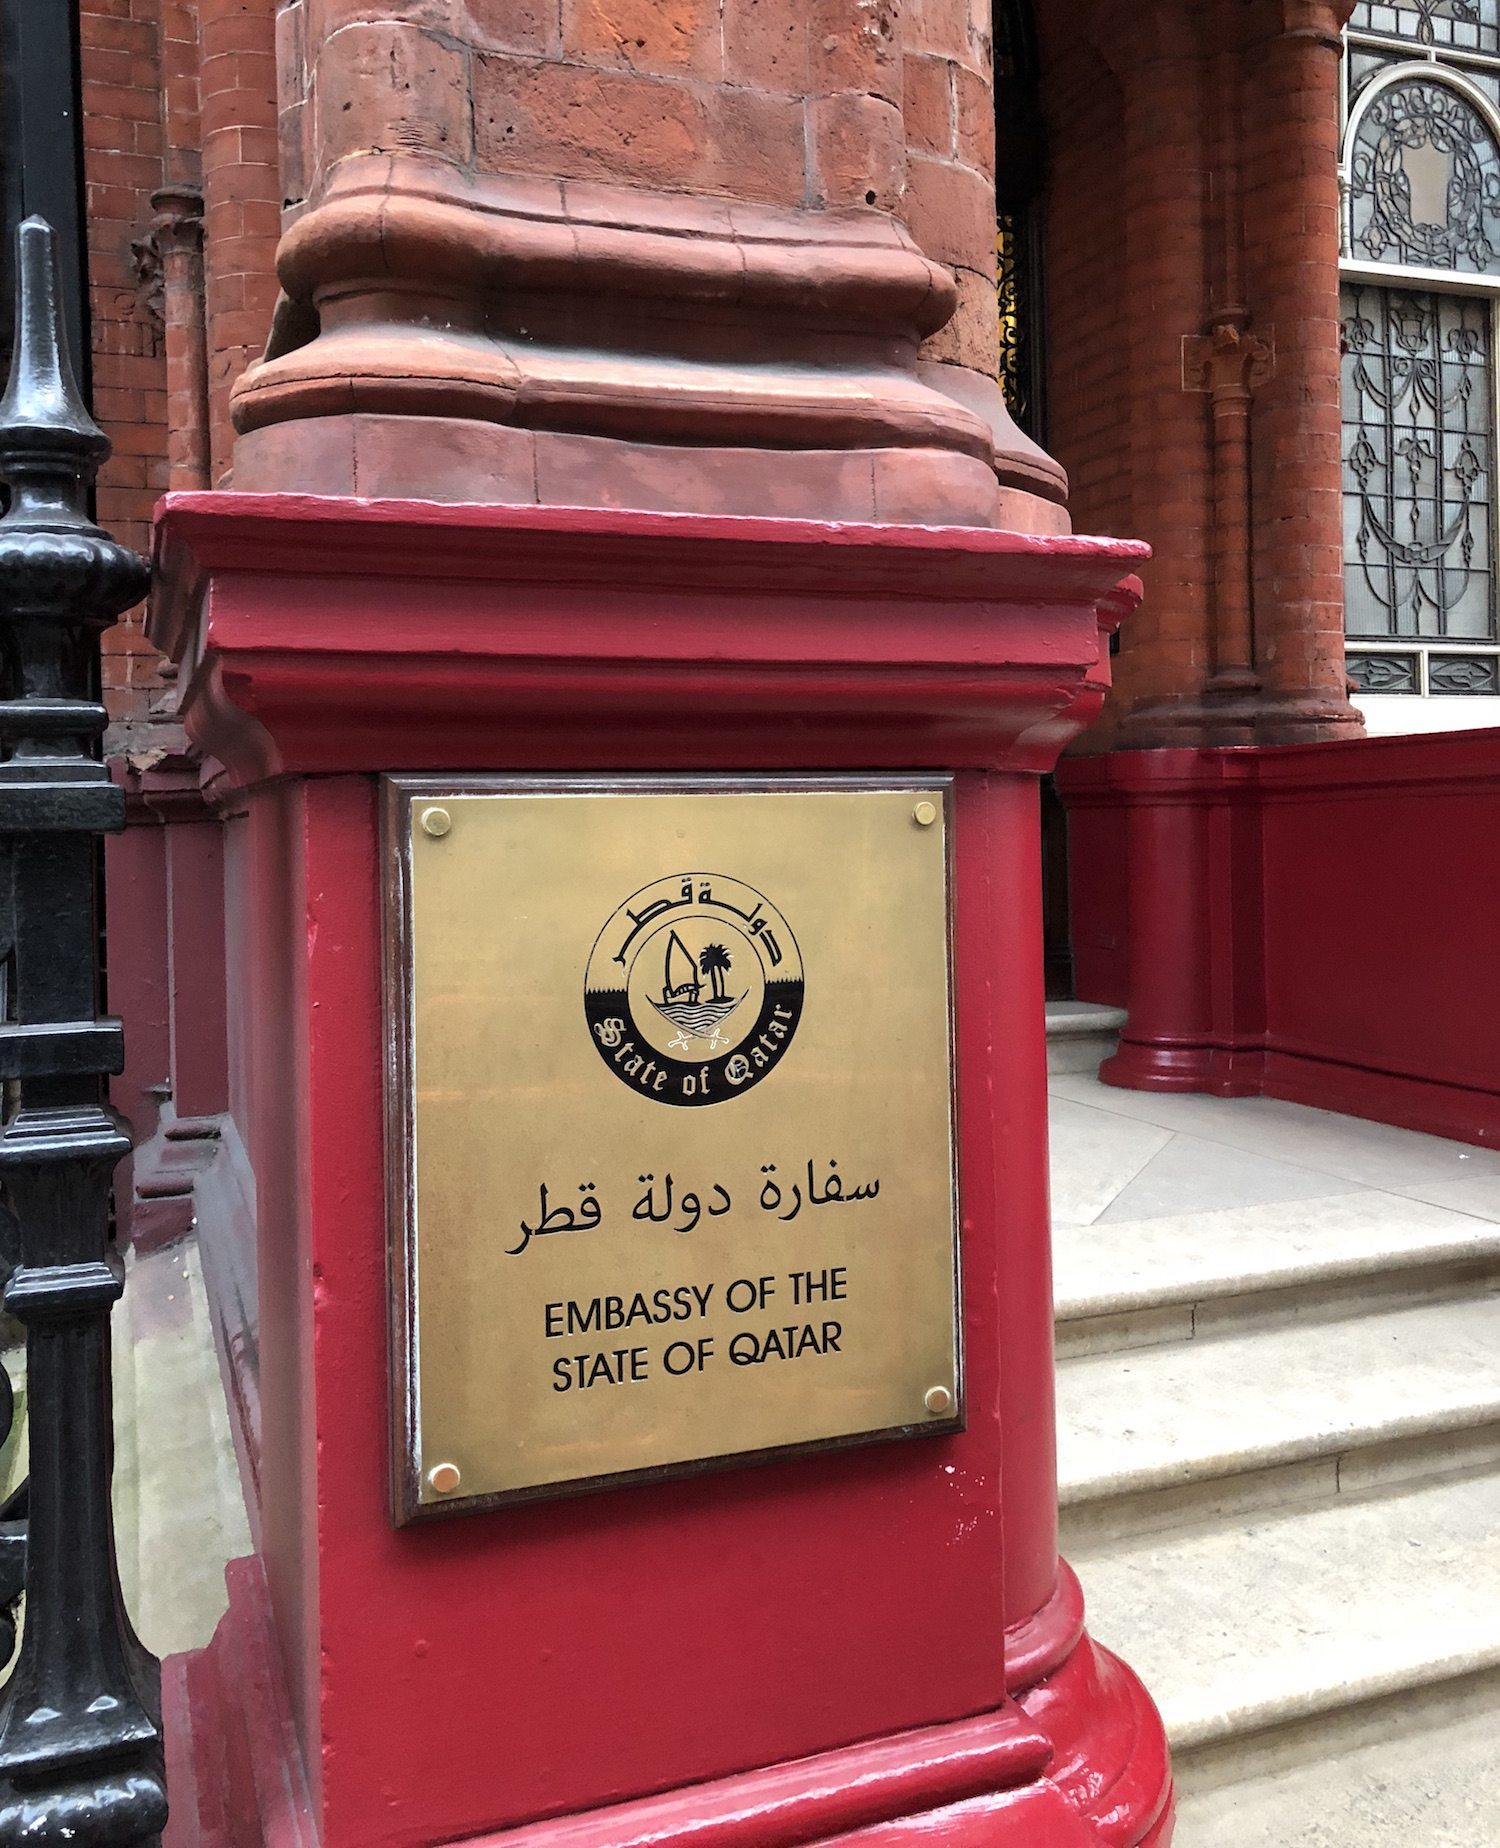 Image Qatar Embassy, London UK [Image: Anthony LoPresti, Lima Charlie News]